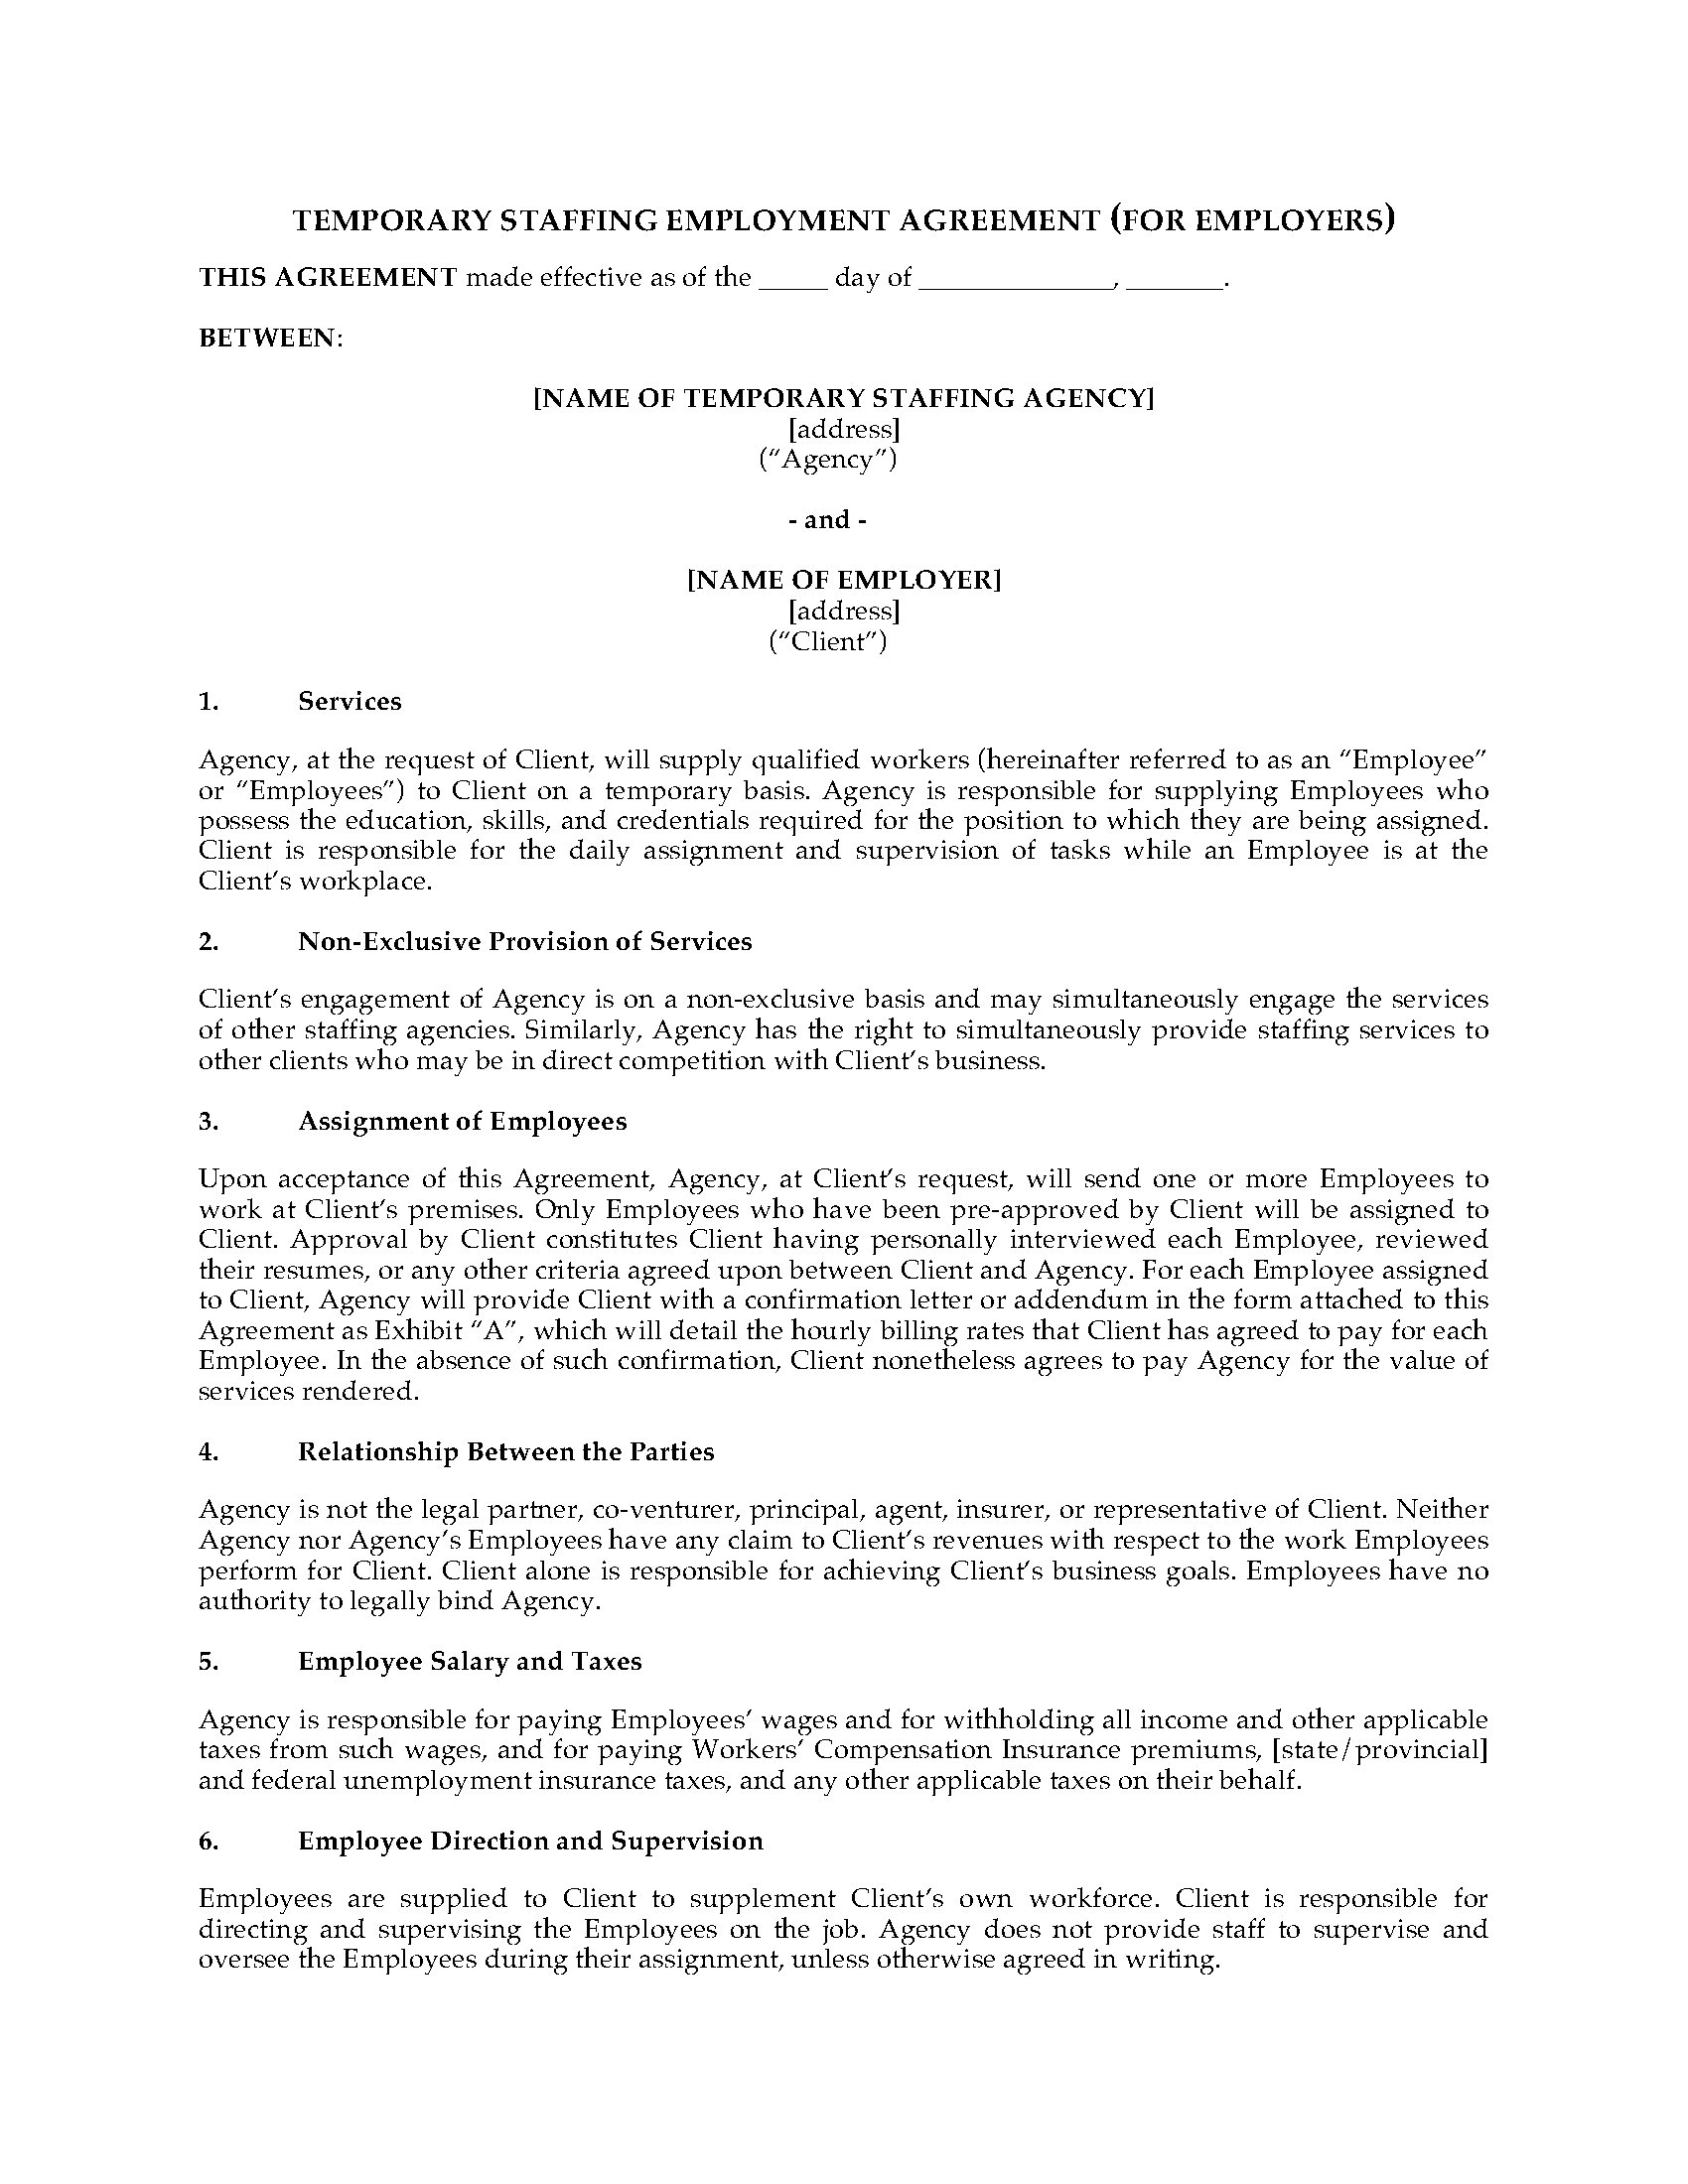 temporary employment contract template free - temporary staffing agreement form legal forms and